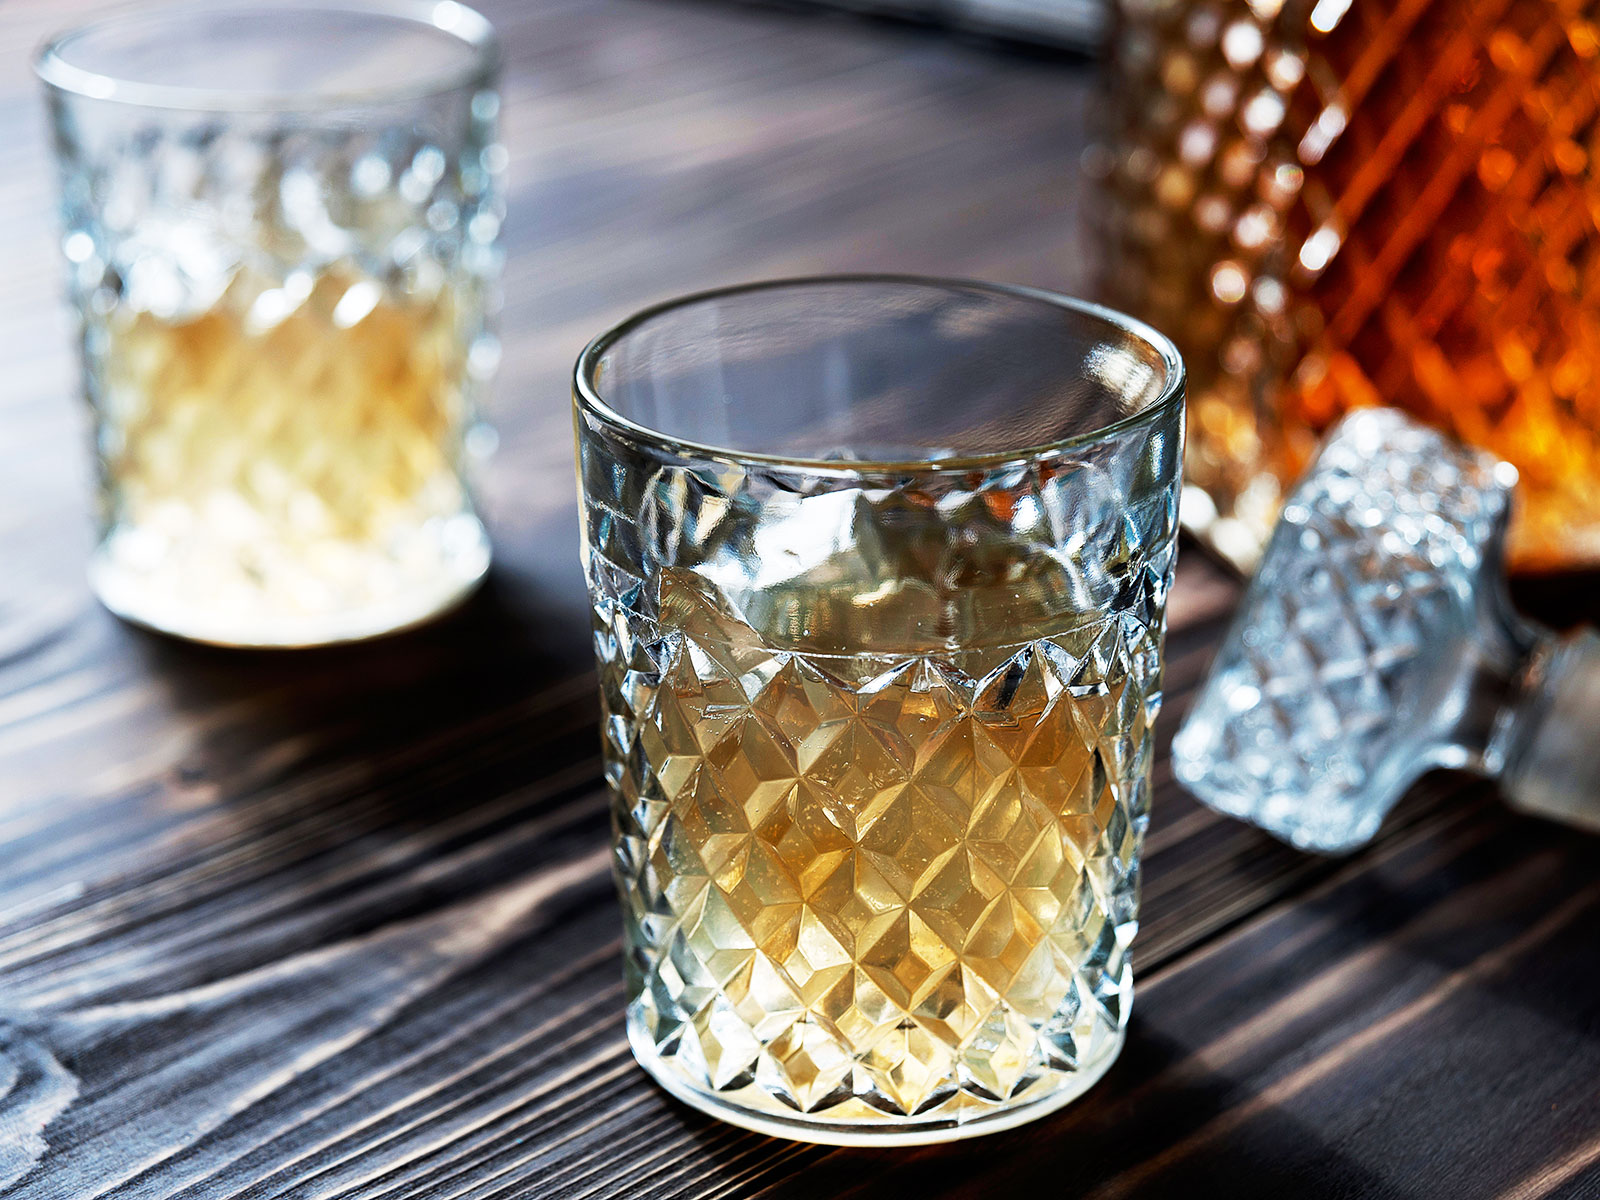 whisky decanter and glass